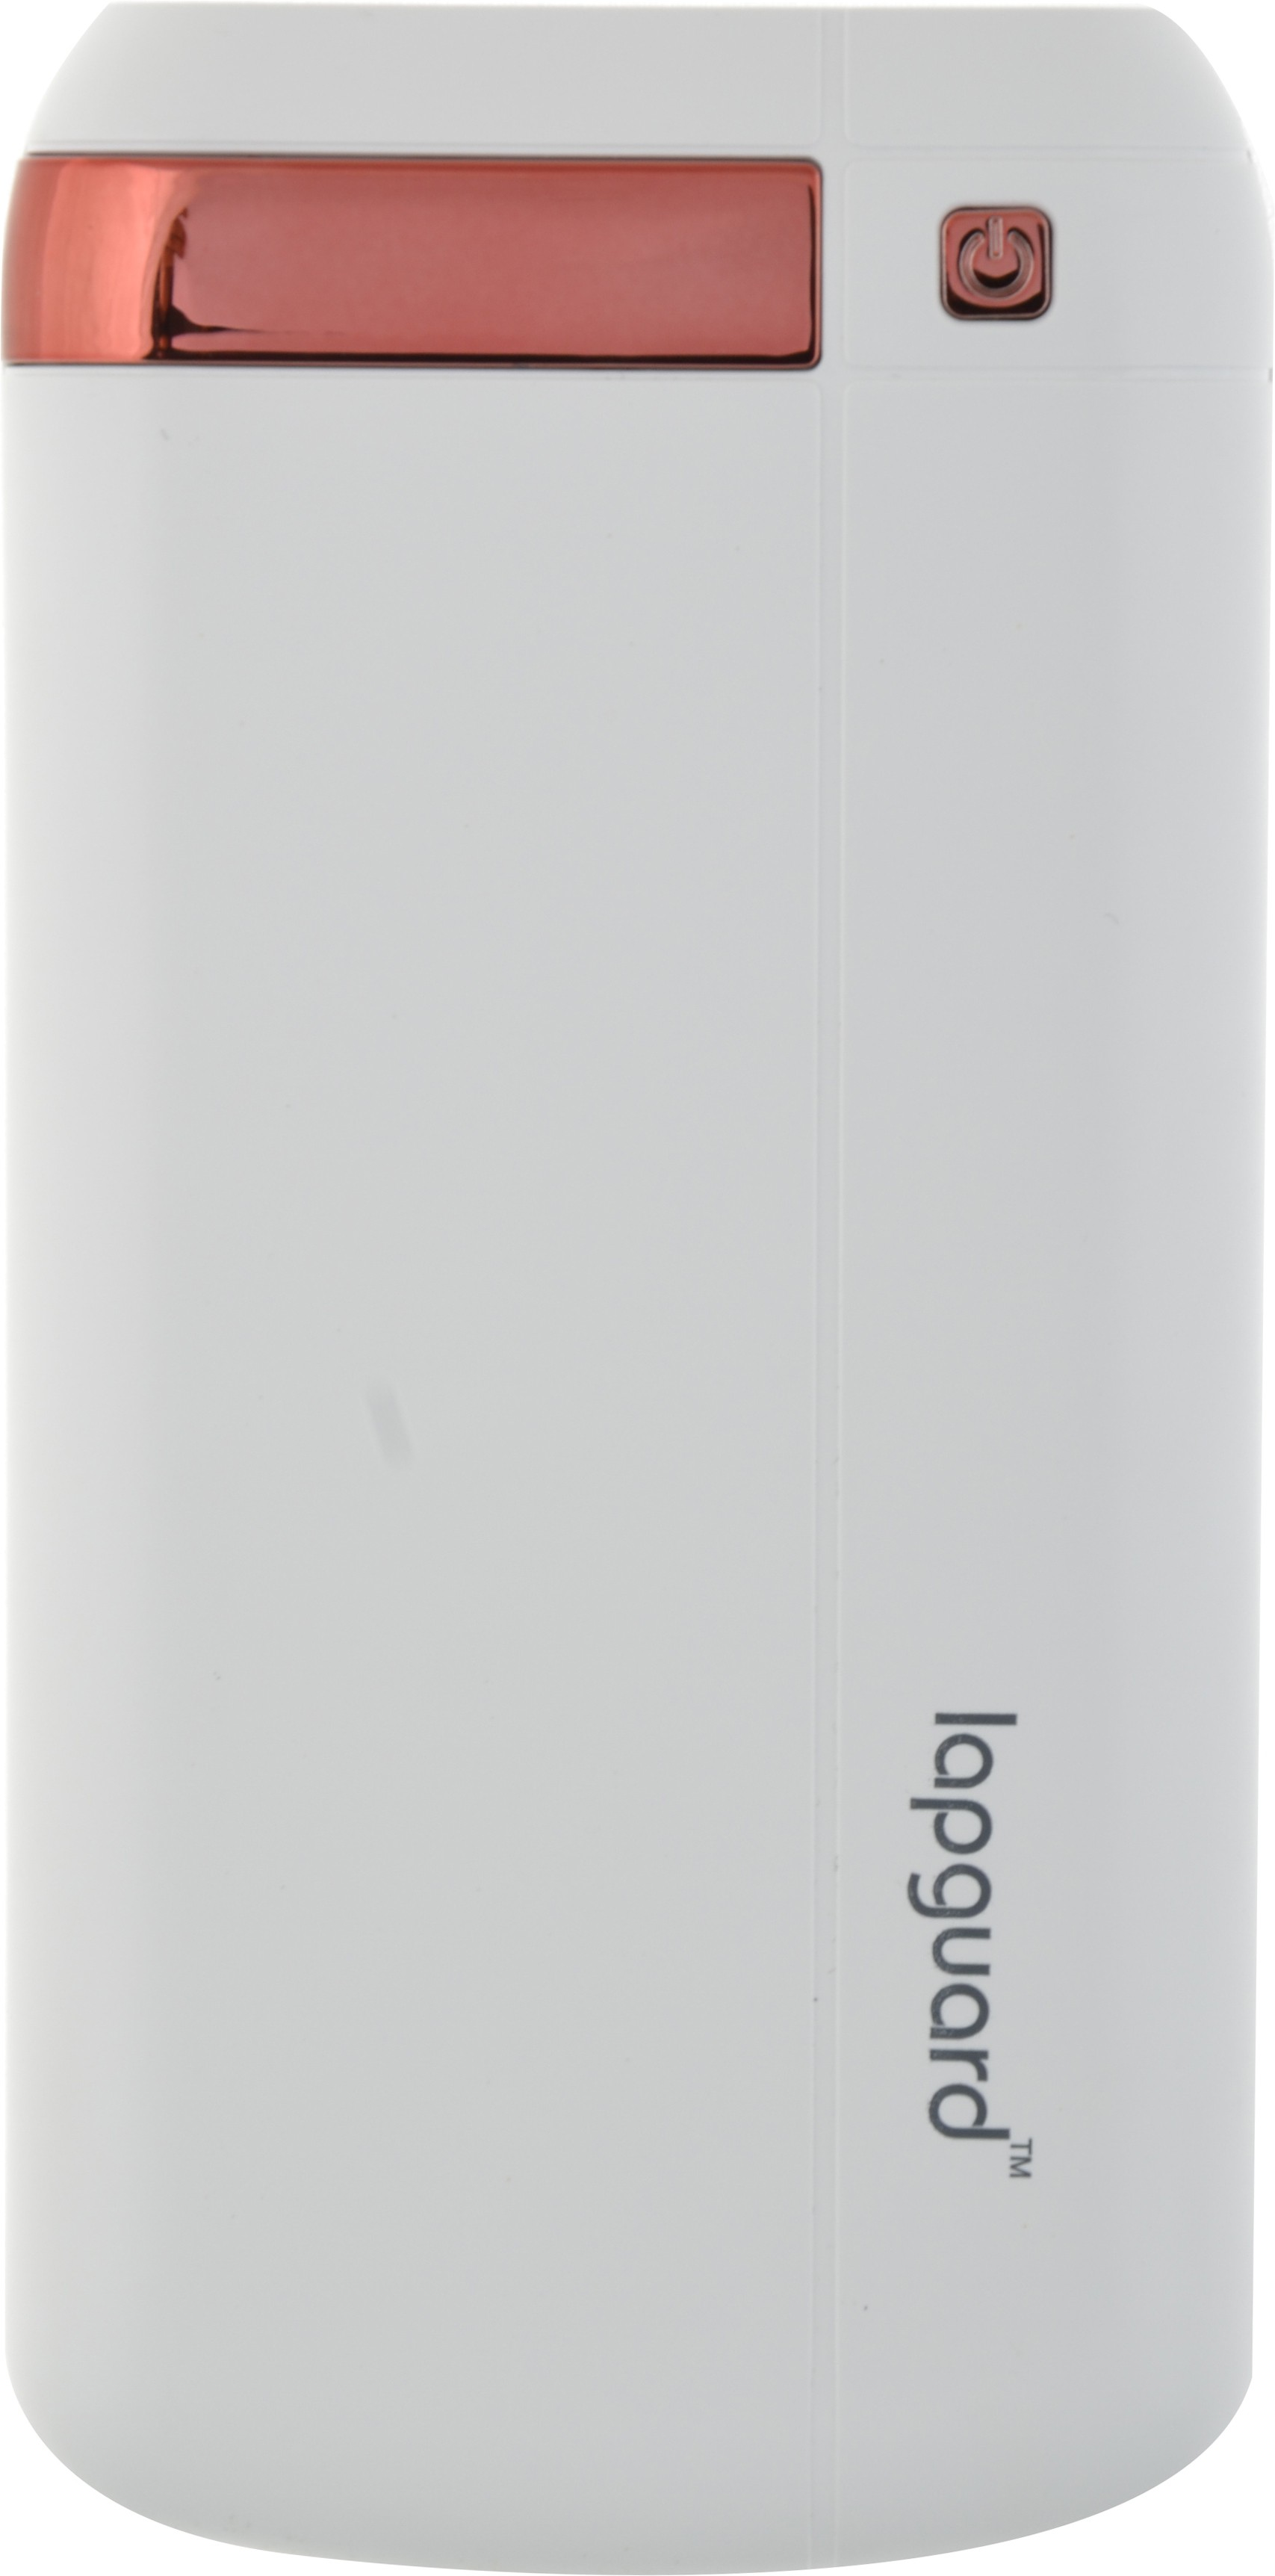 Lapguard LG803 20800 mAh Power Bank(White, Red, Lithium-ion)